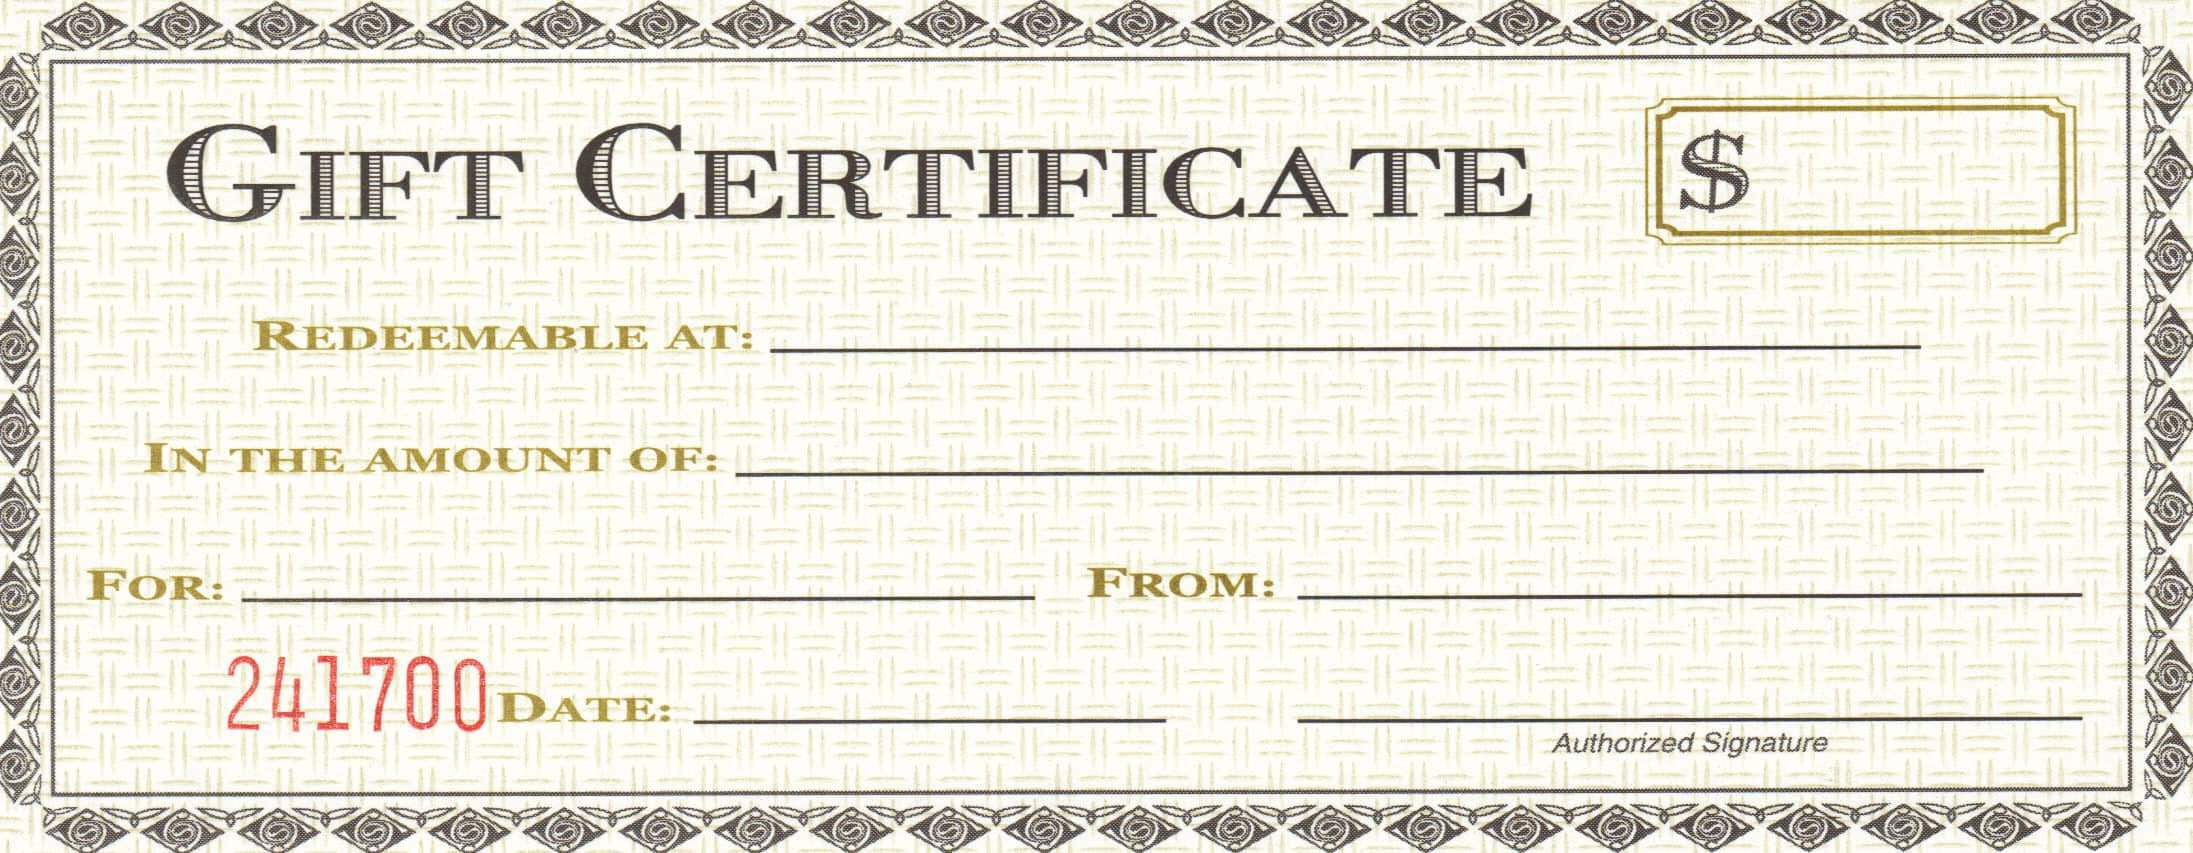 Gift Certificate Template Pages 18 Gift Certificate Templates Excel Pdf formats